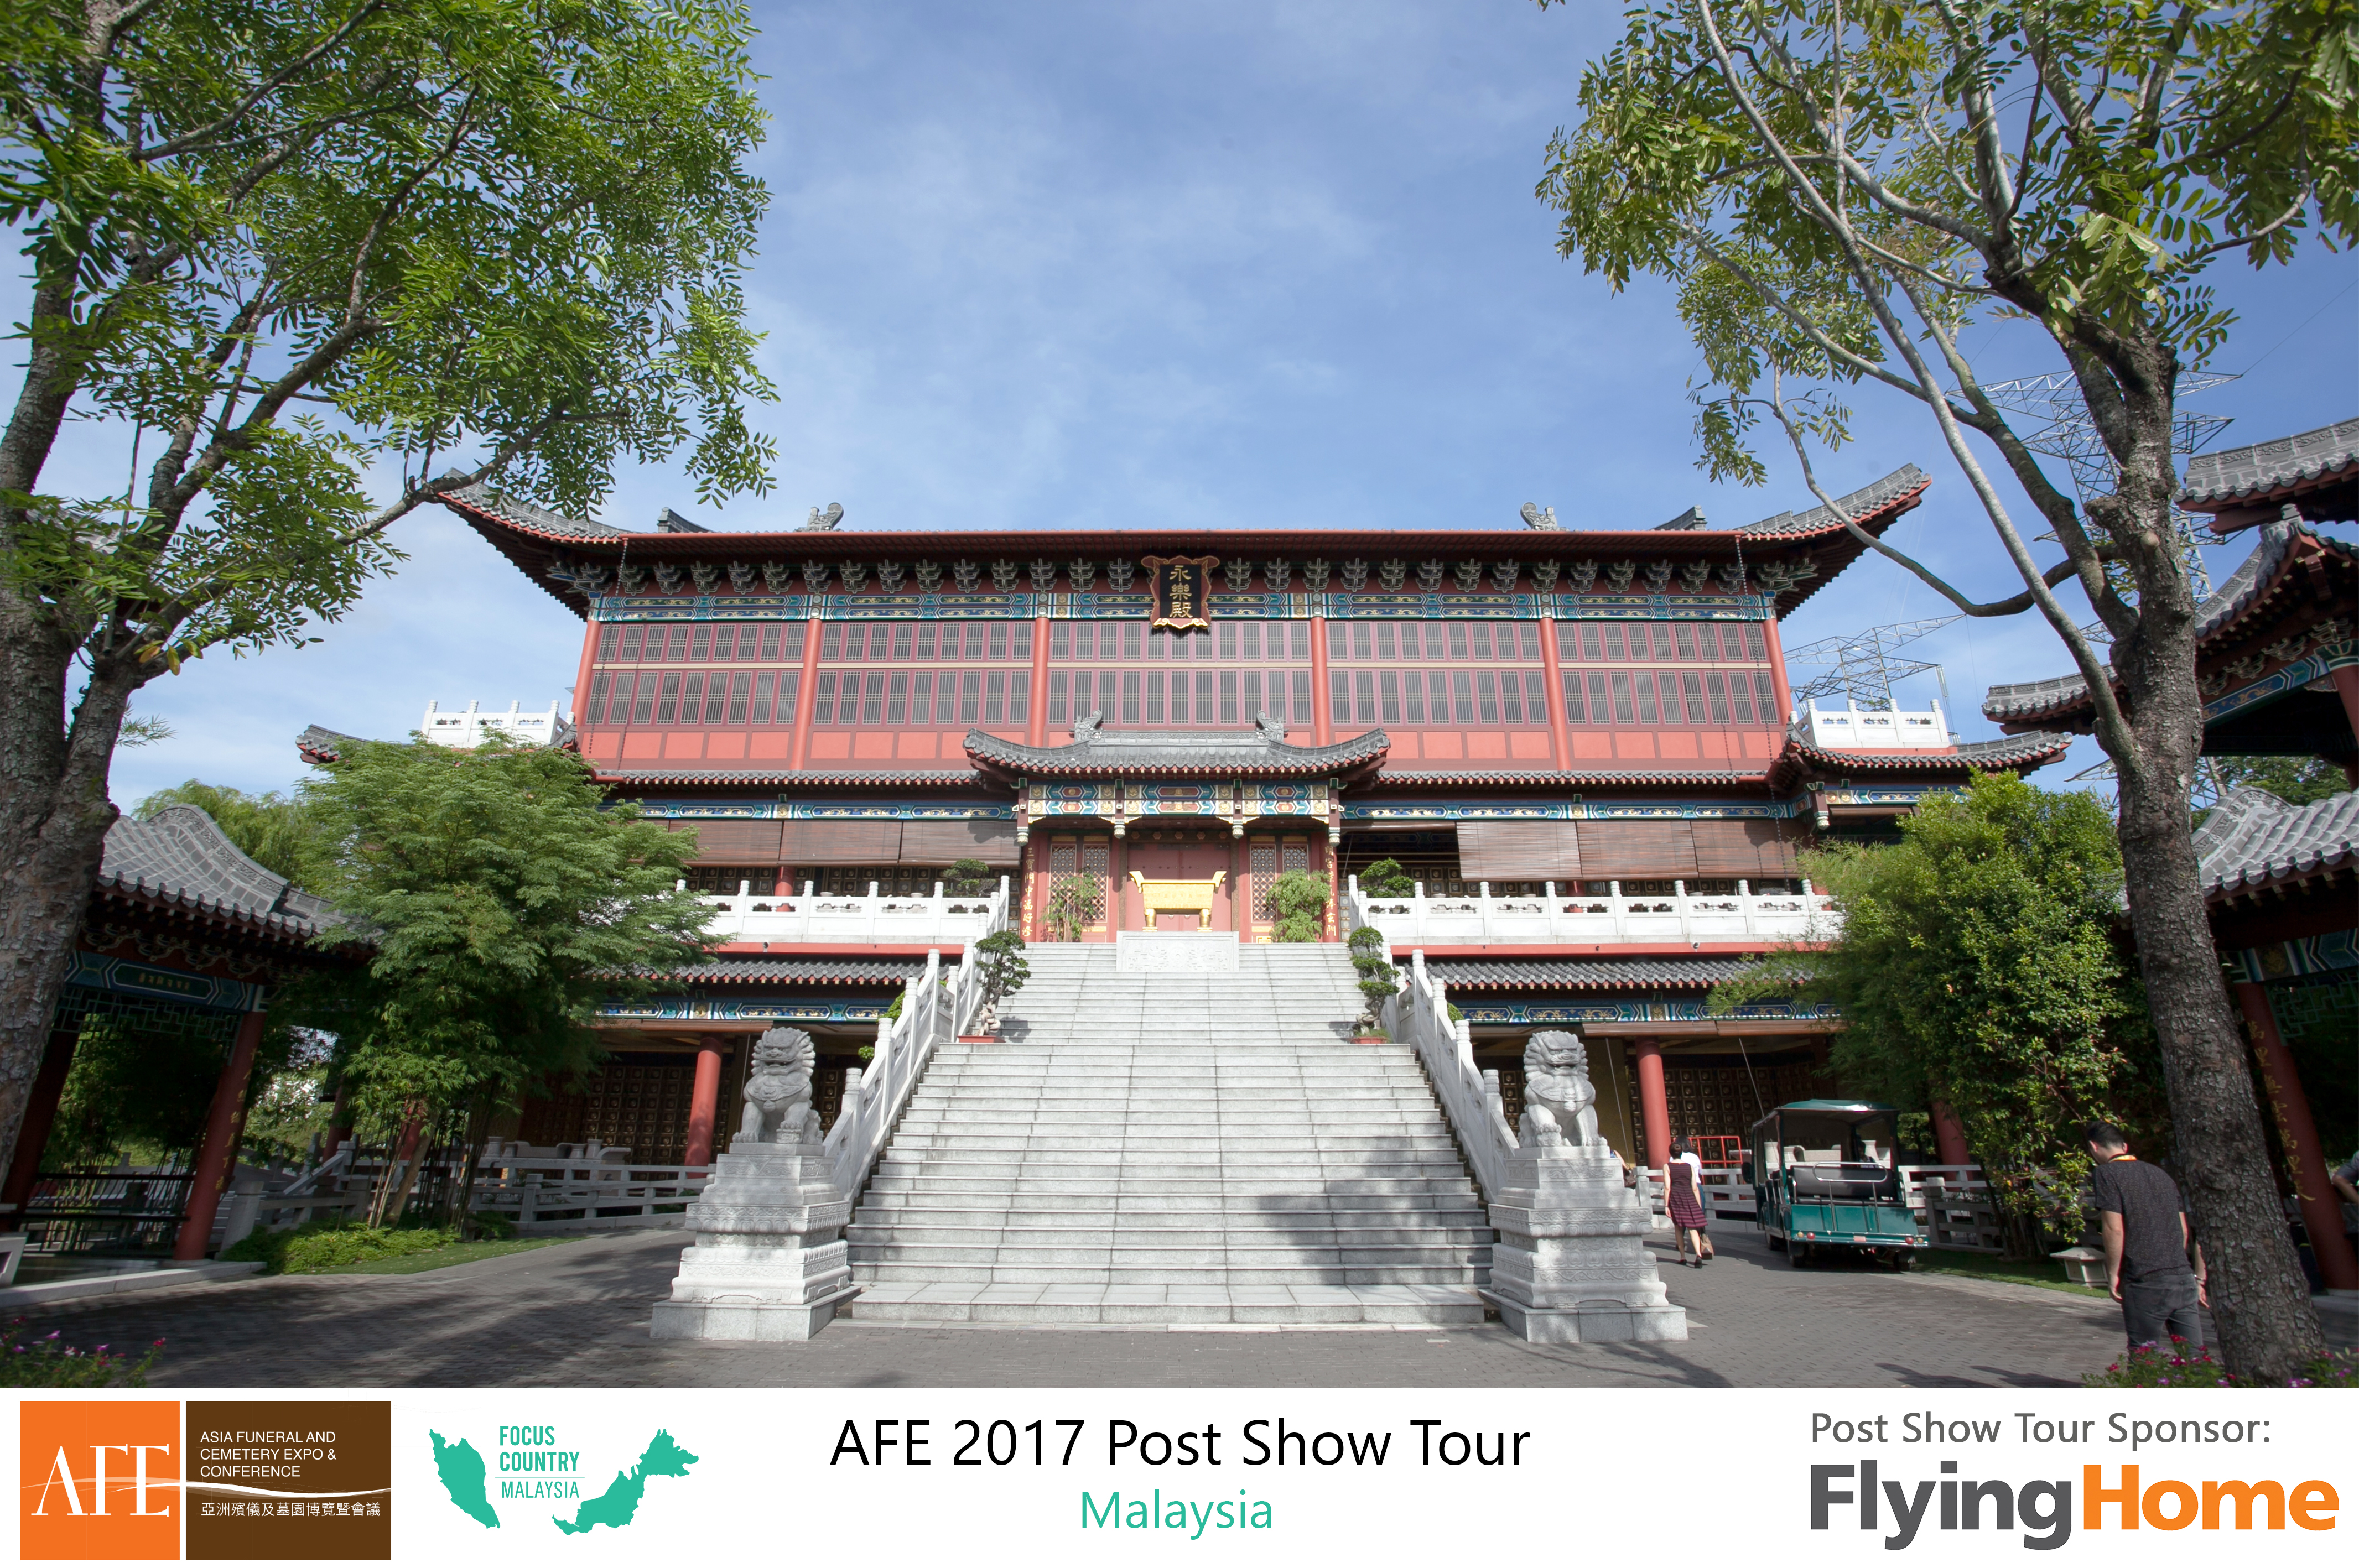 AFE Post Show Tour 2017 Day 2 - 19